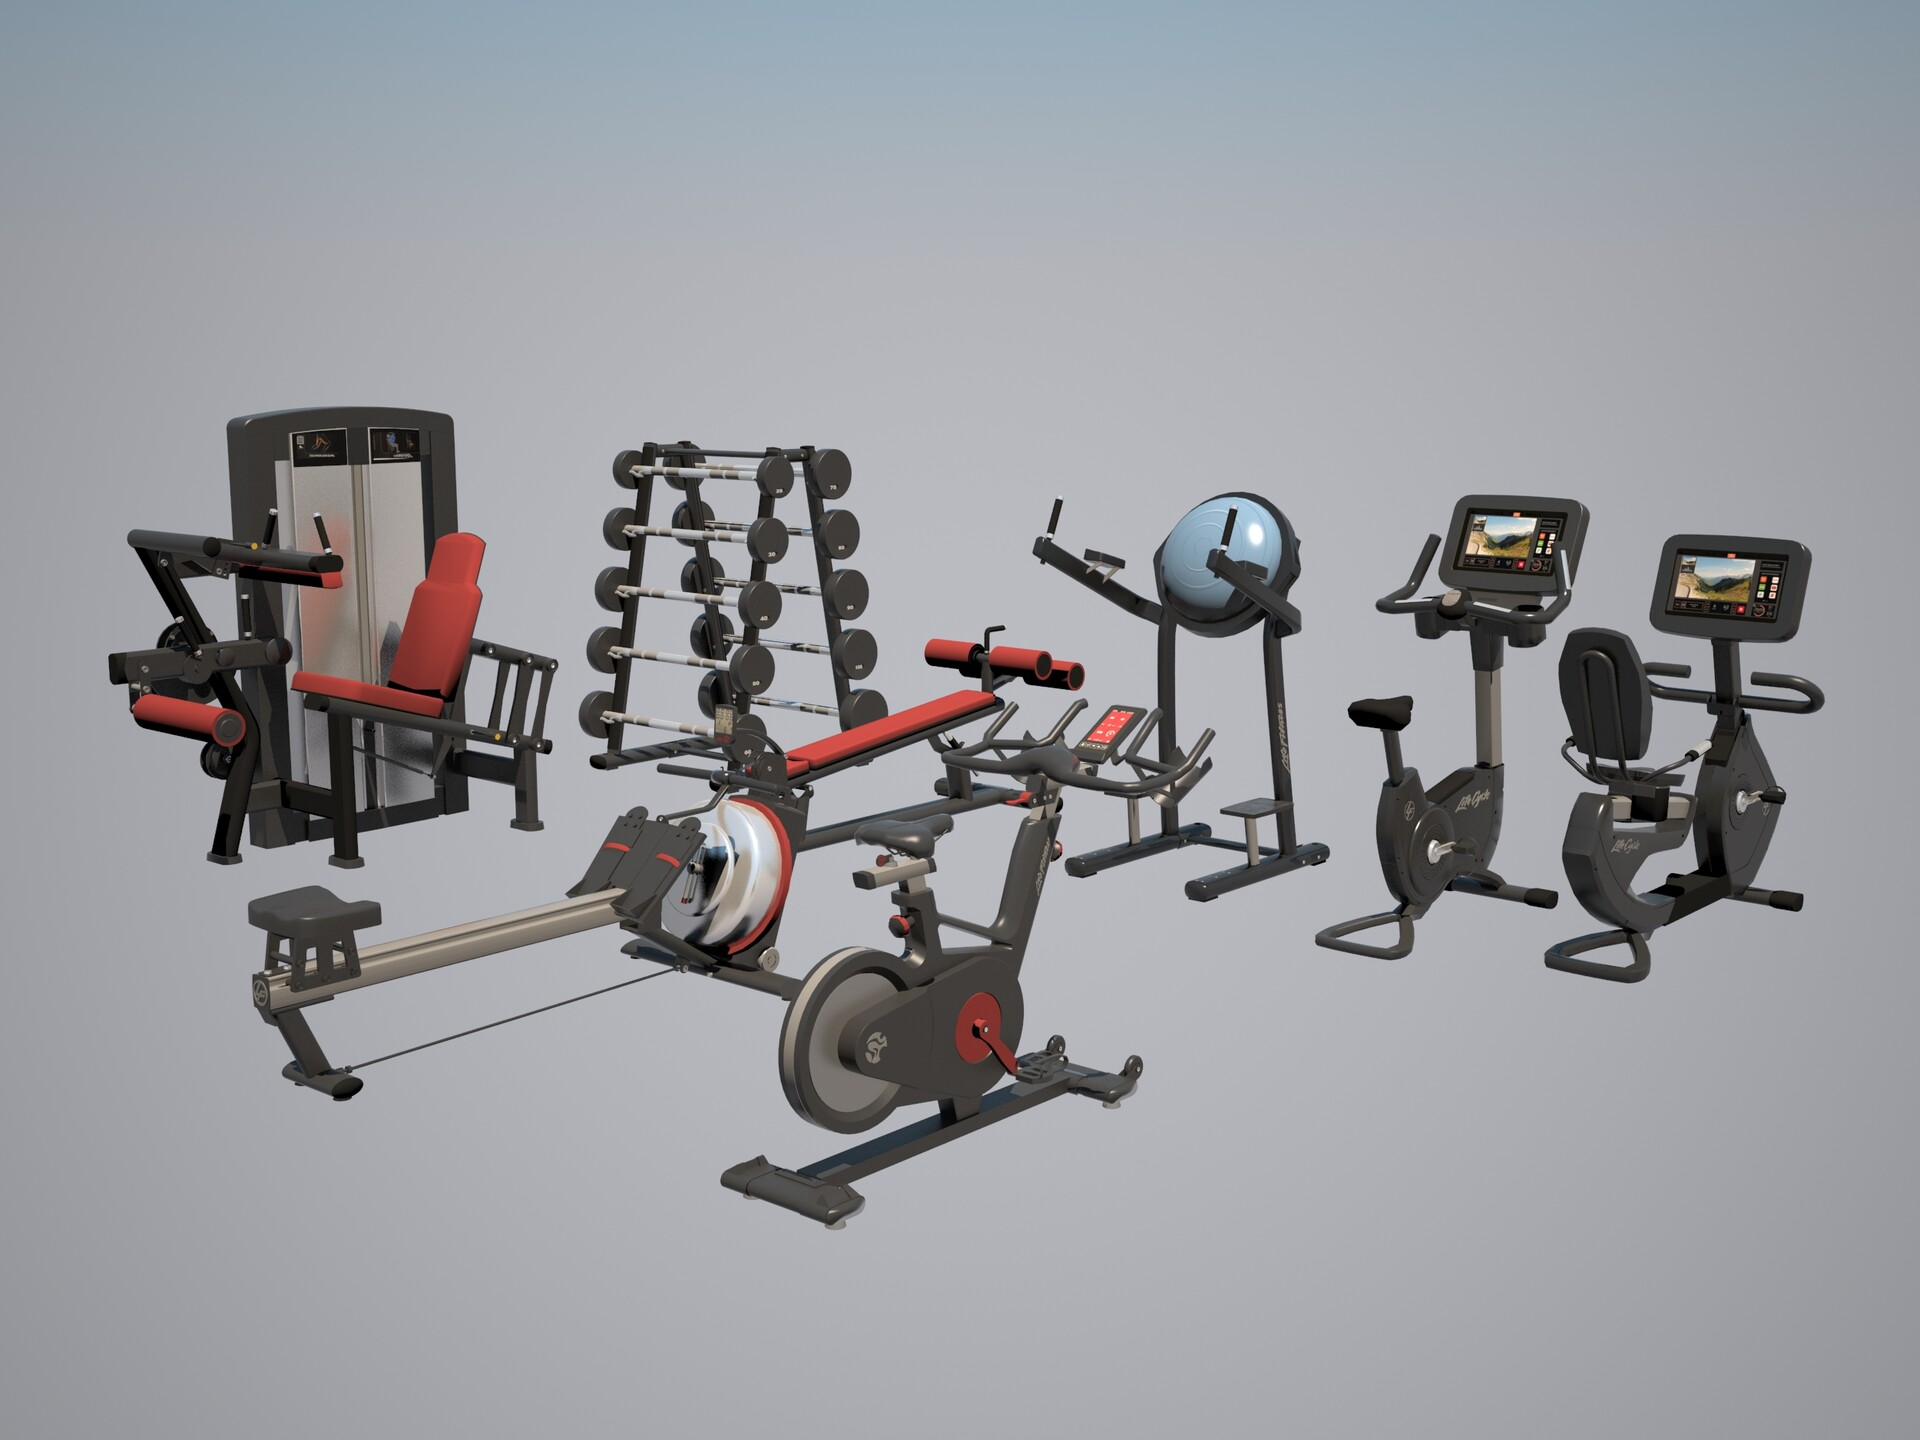 Gym equipment from Life Fitness.